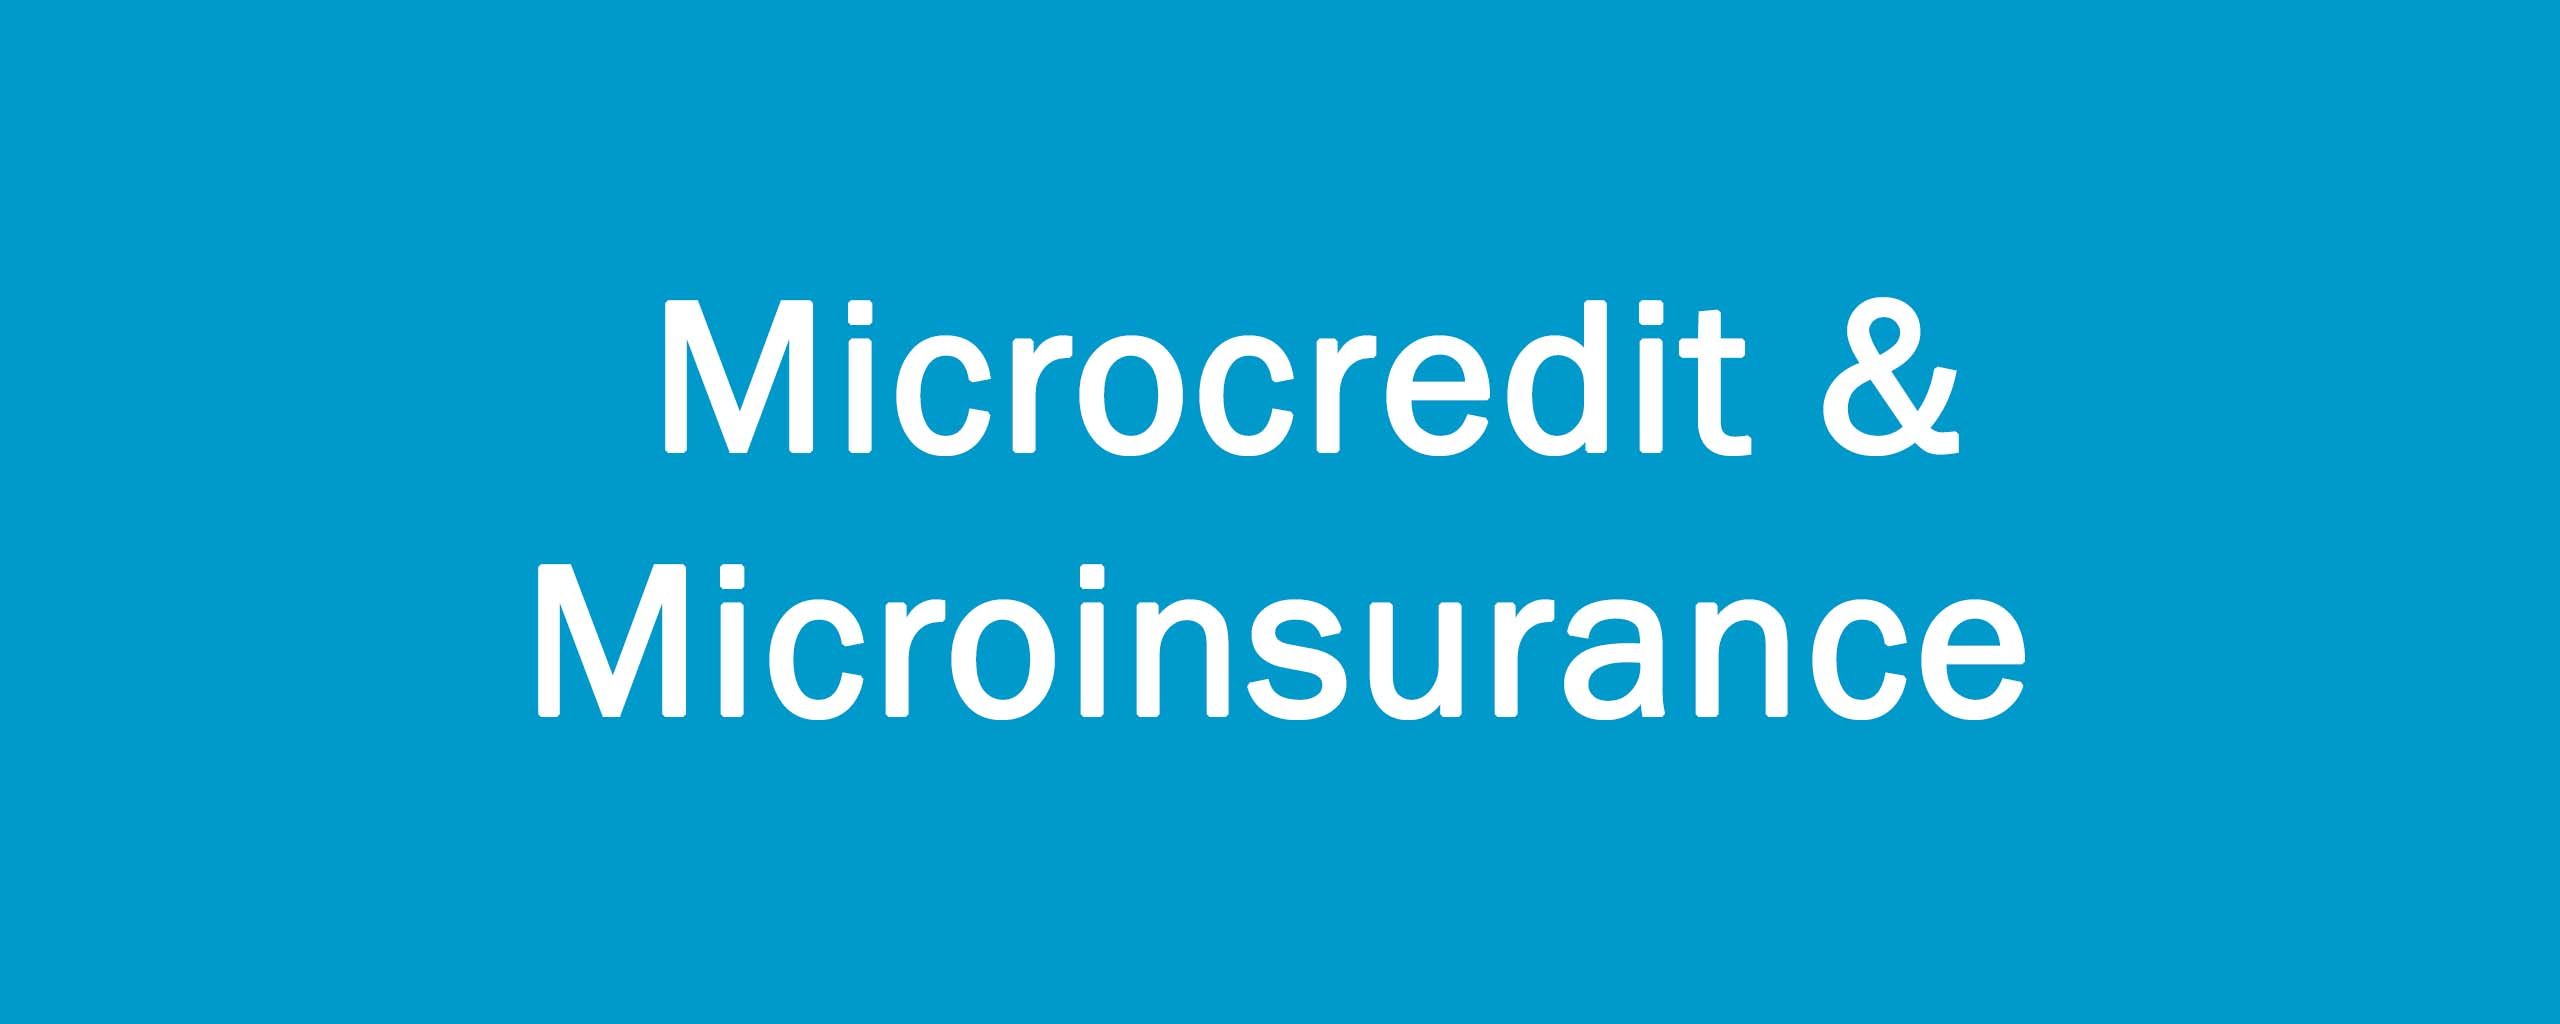 Microcredit & Microinsurance